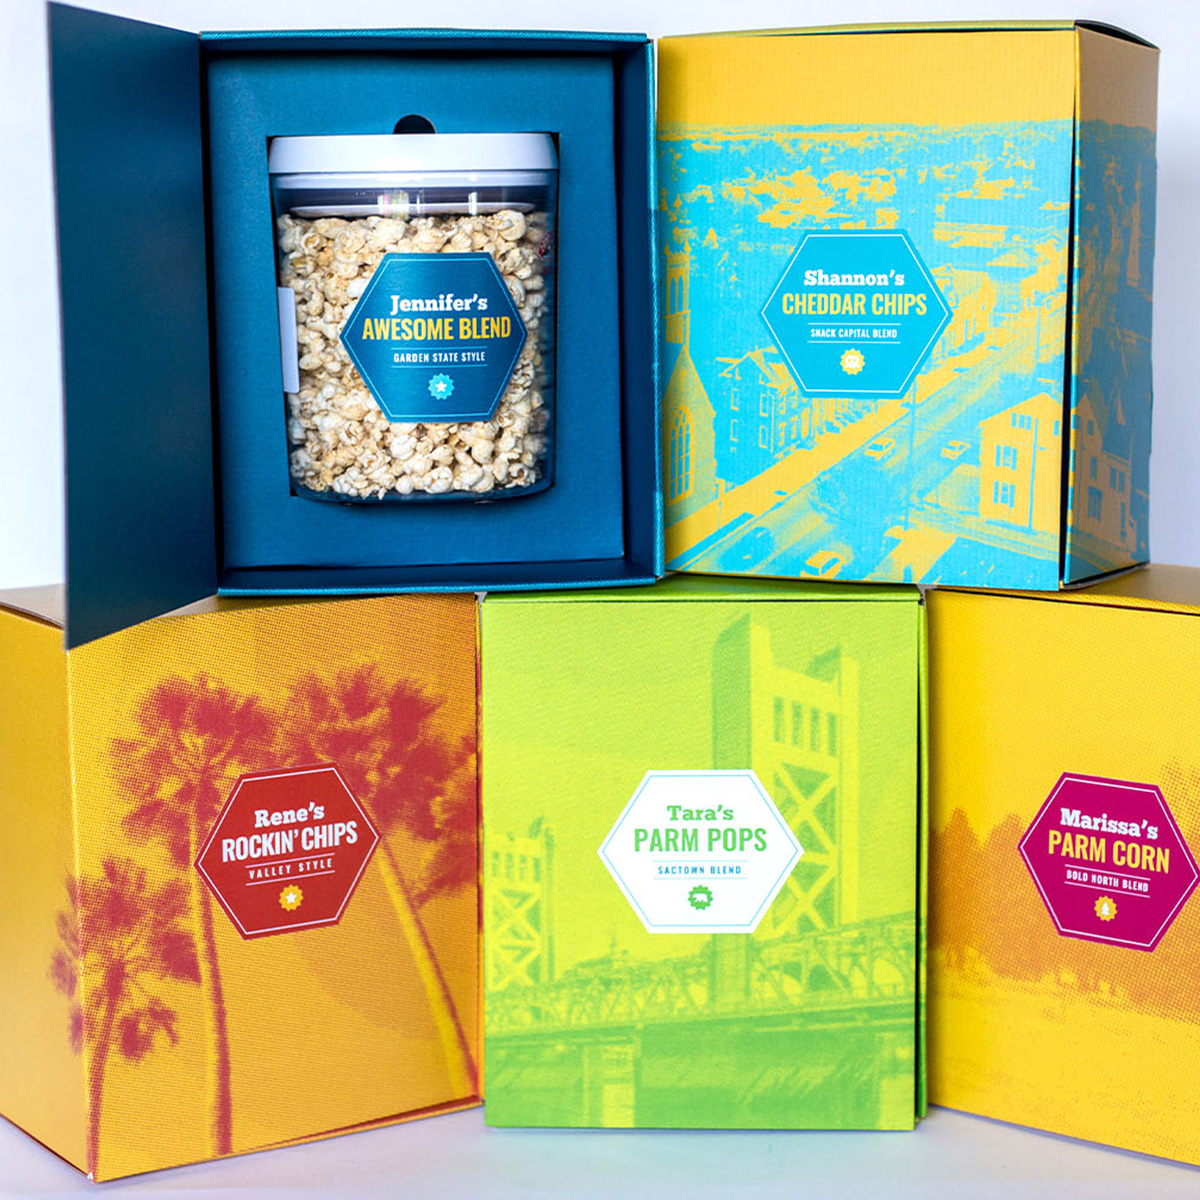 Land O'Lakes direct mail boxes with popcorn